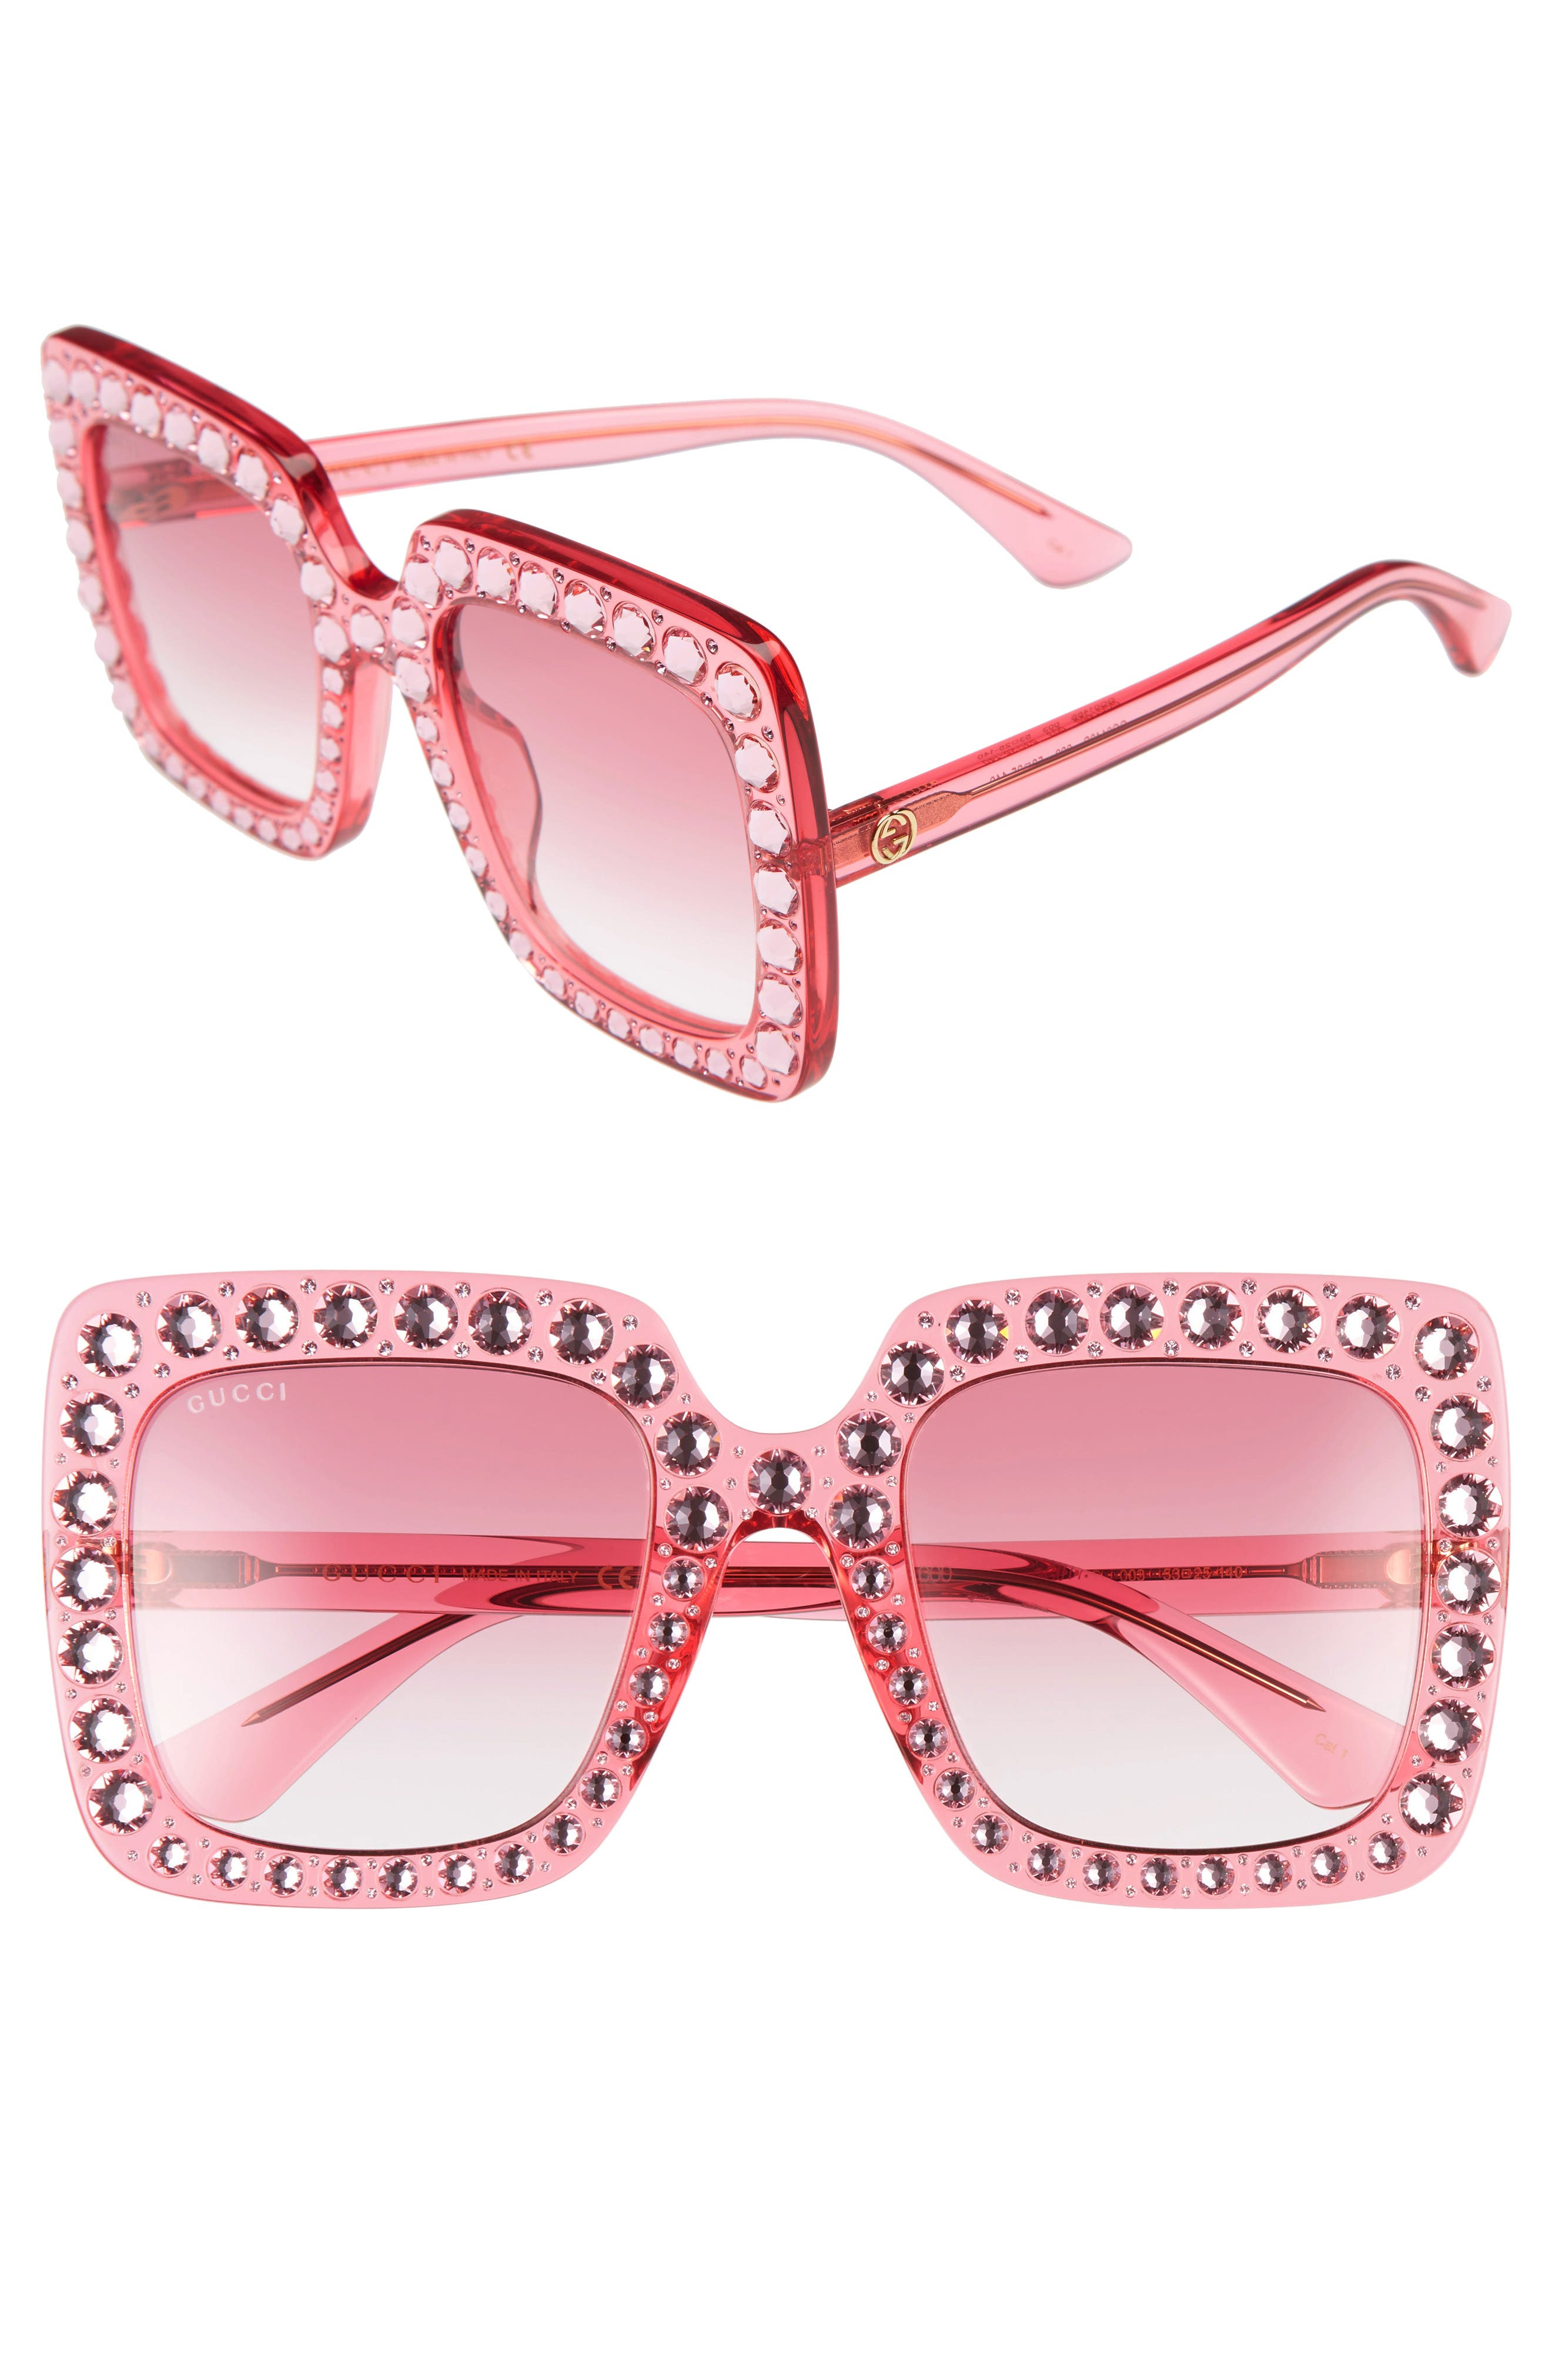 Main Image - Gucci 53mm Crystal Embellished Square Sunglasses